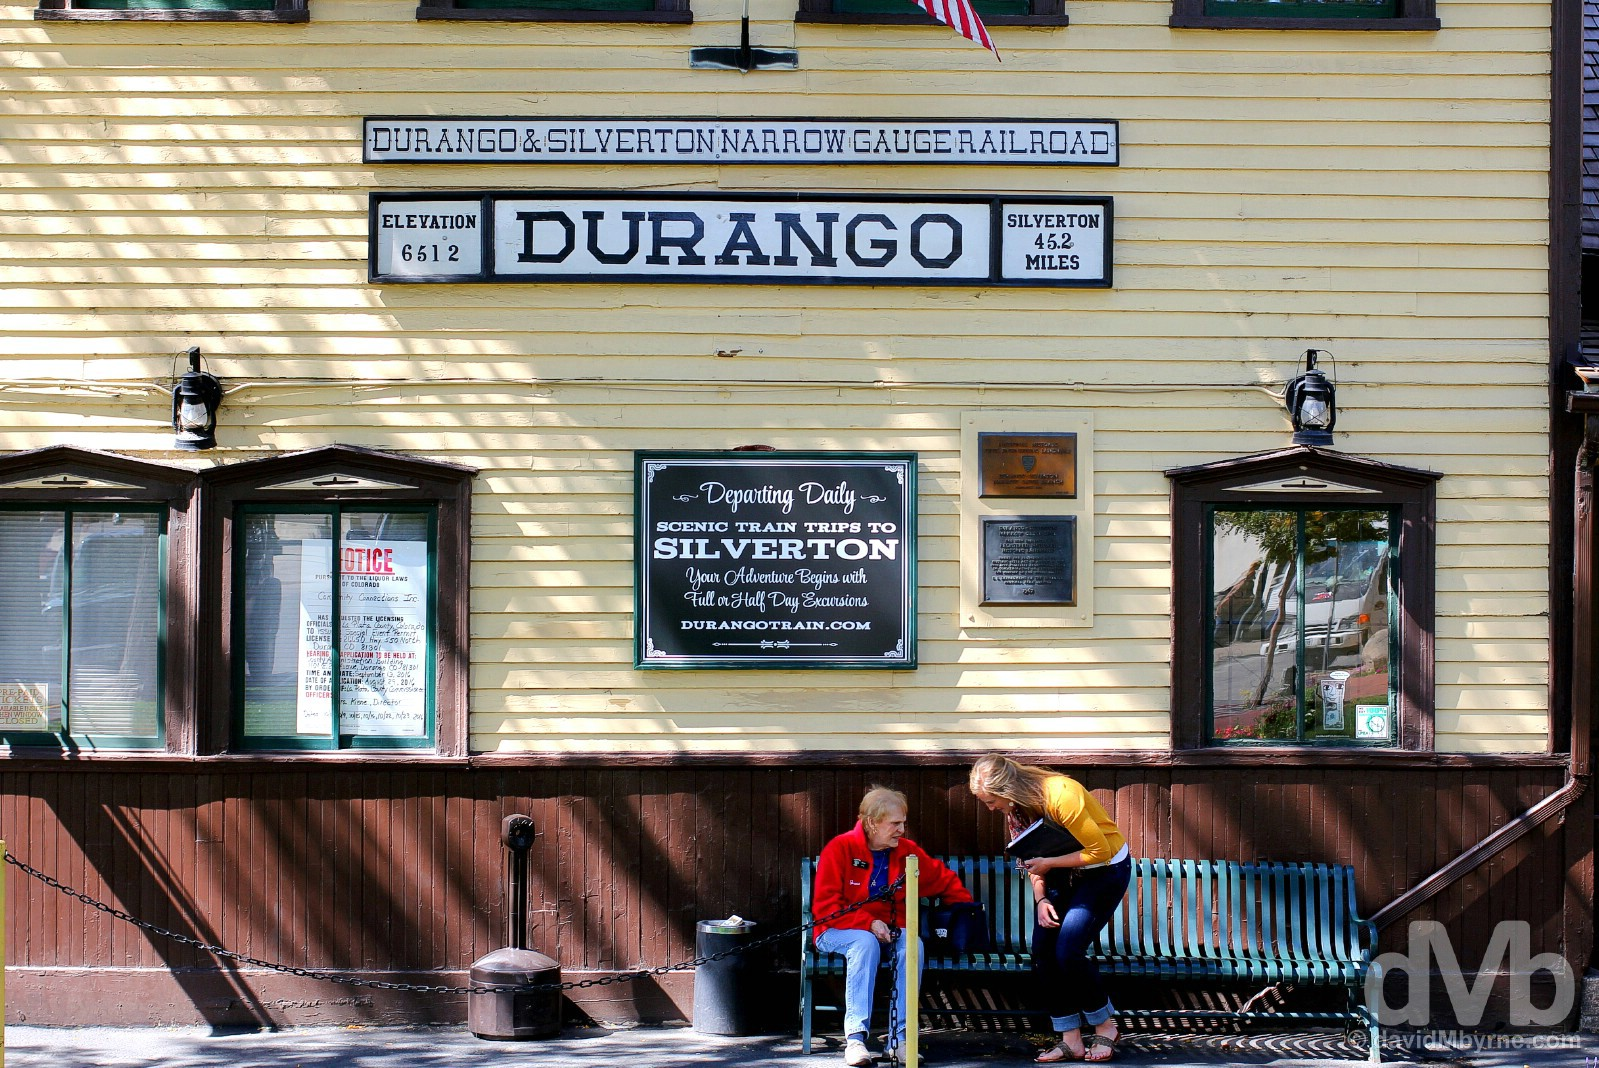 The Durango & Silverton Narrow Gauge Railroad Depot, Main Avenue, Durango, Colorado. September 12, 2016.